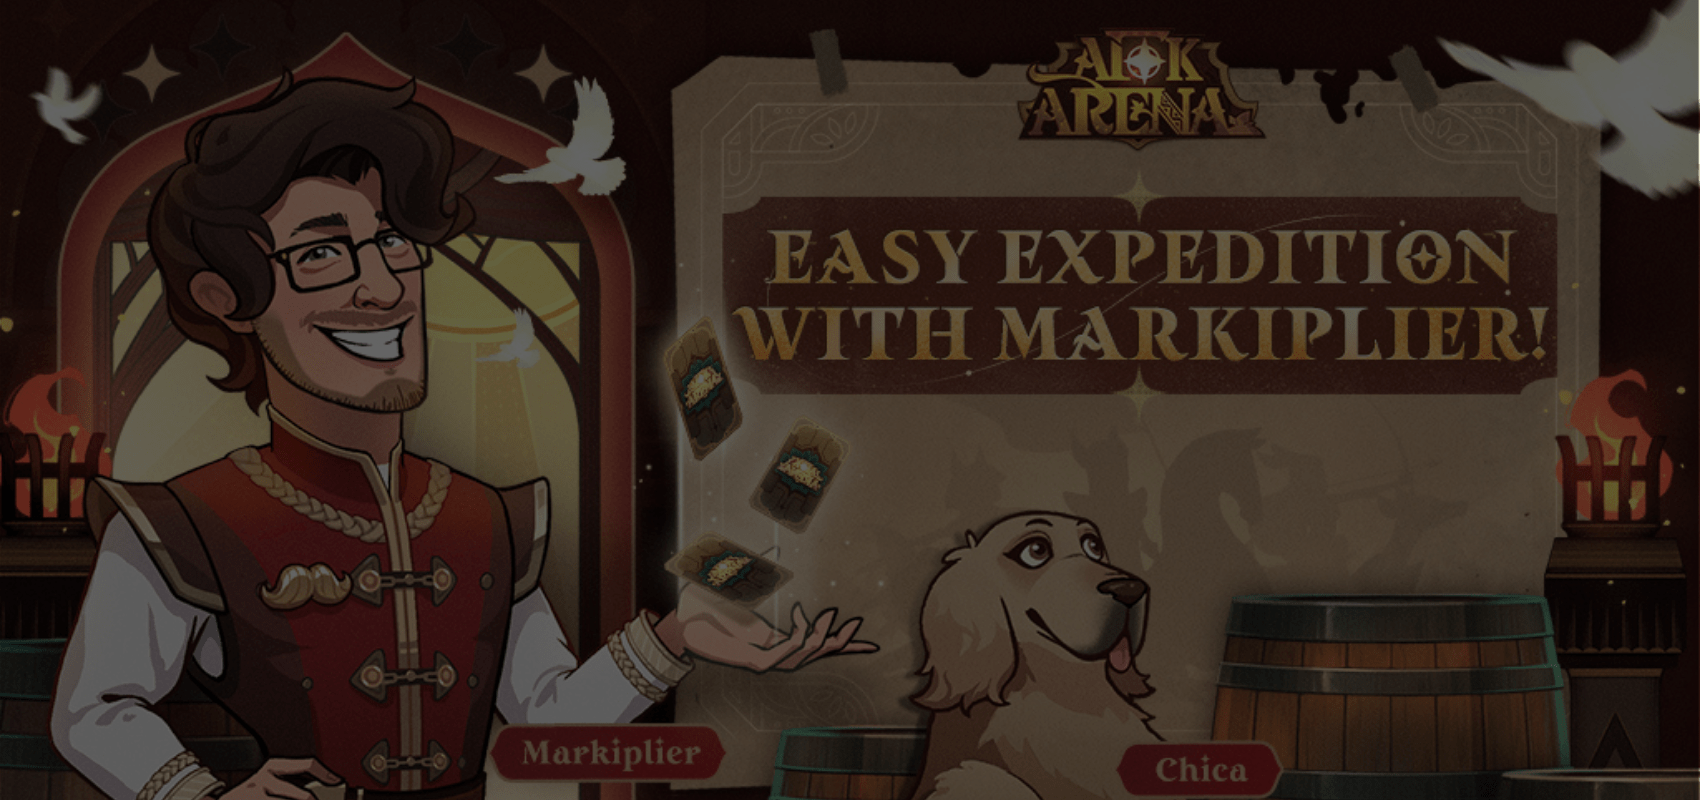 There's a new barkeeper in town – Markiplier joins the Tavern staff in AFK Arena